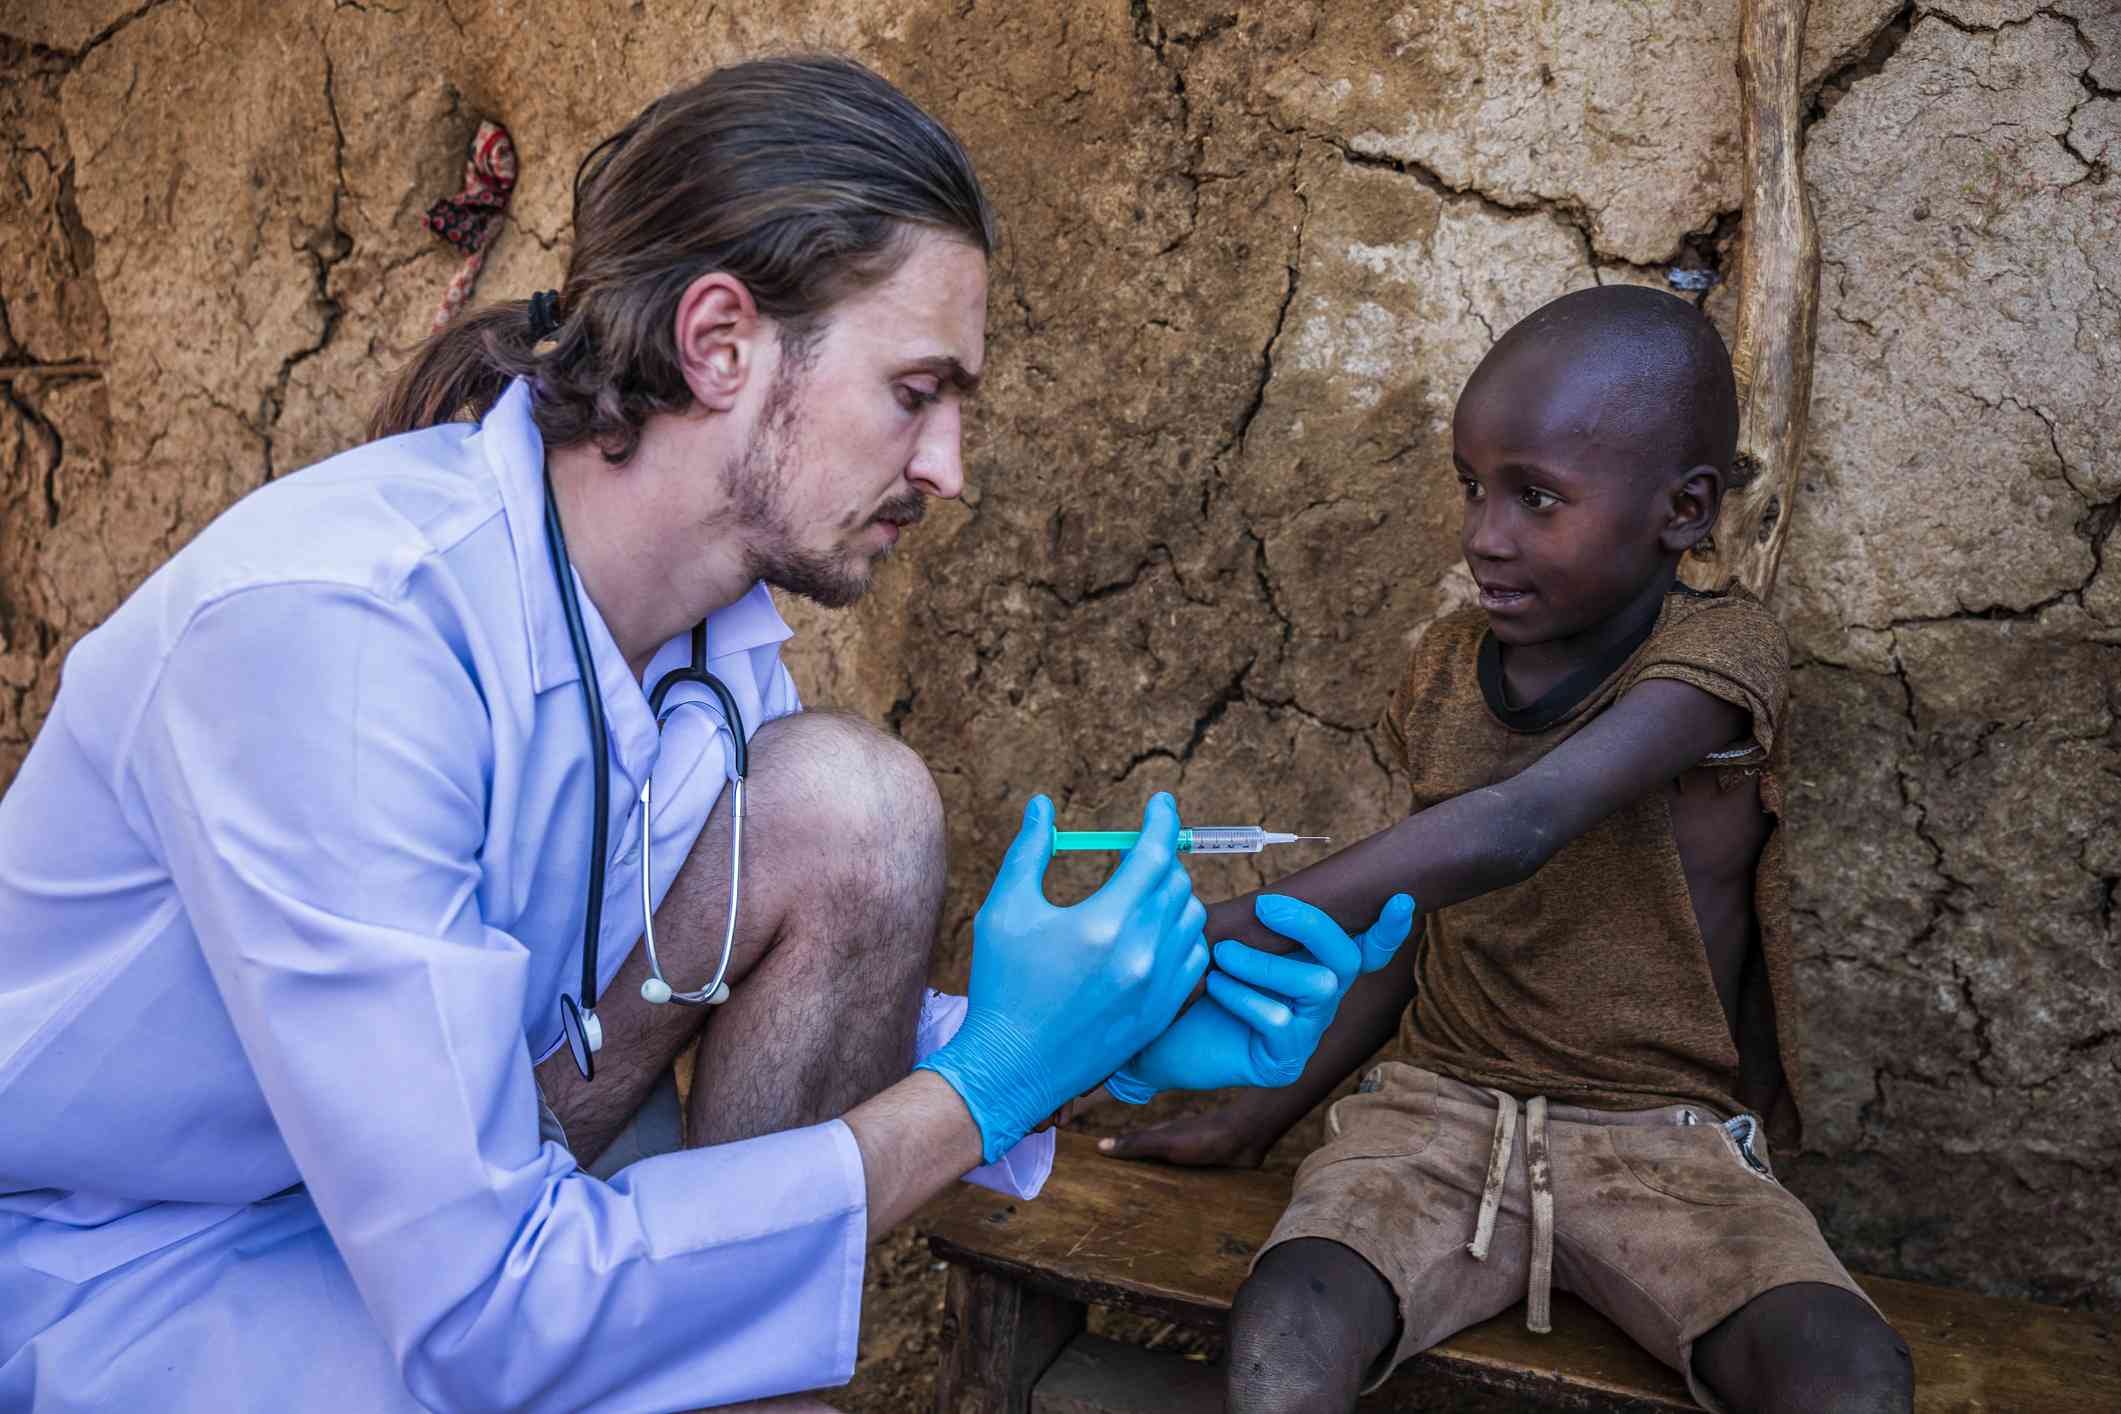 A doctor giving an injection to a boy in Kenya